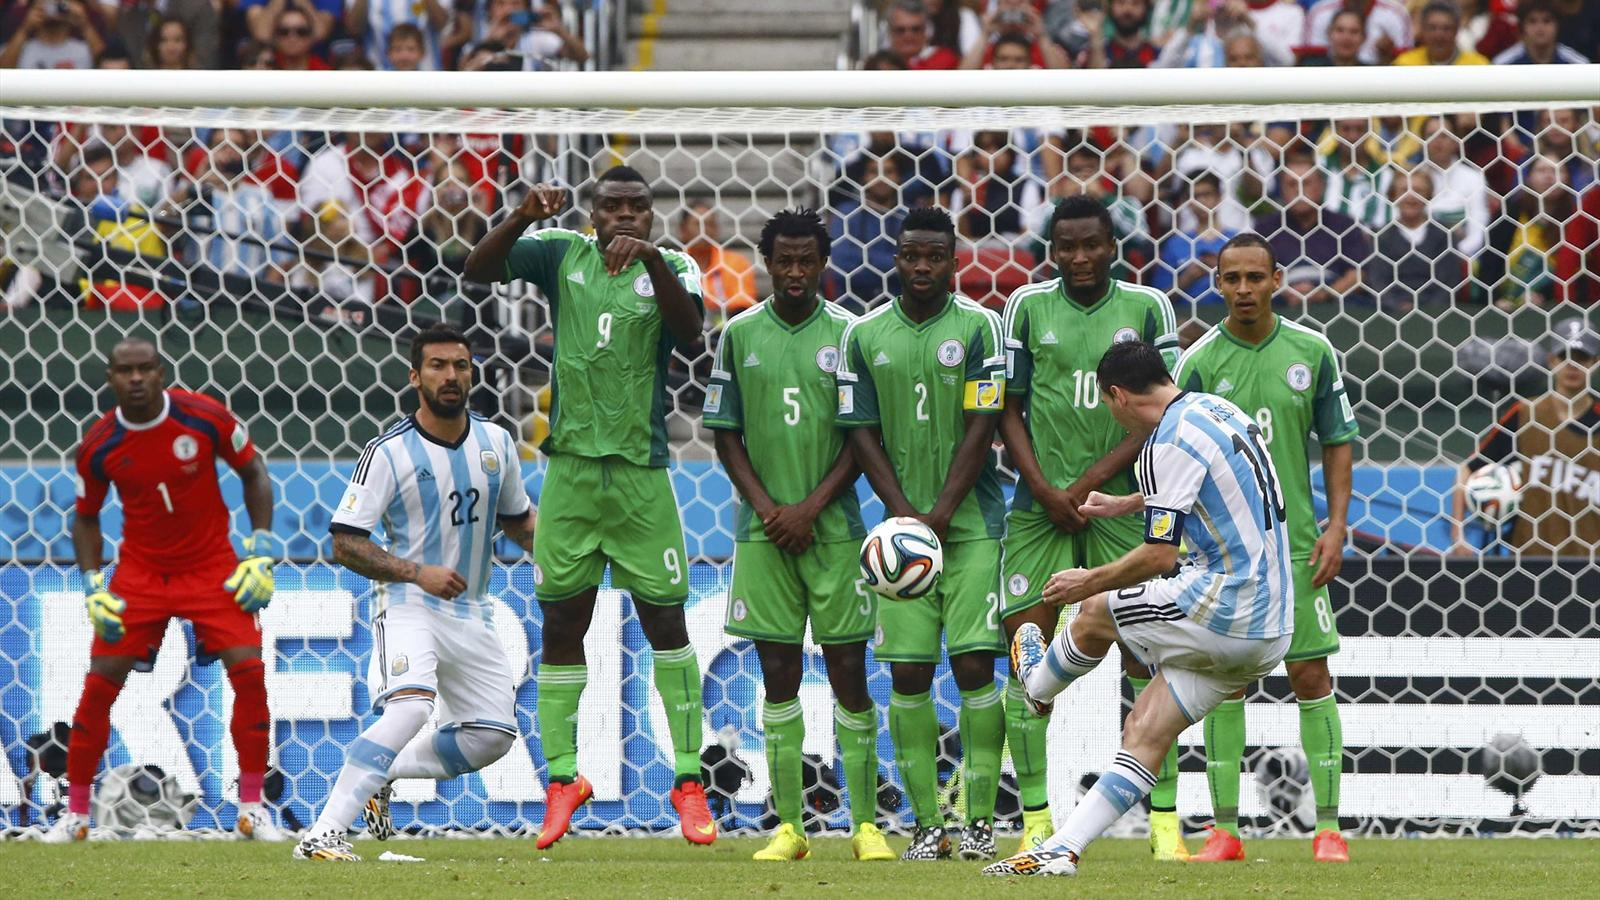 Argentina-s-Lionel-Messi-scores-on-a-free-kick-during-the-World-Cup-Group-F-match-against-Nigeria-wallpaper-wp3003308